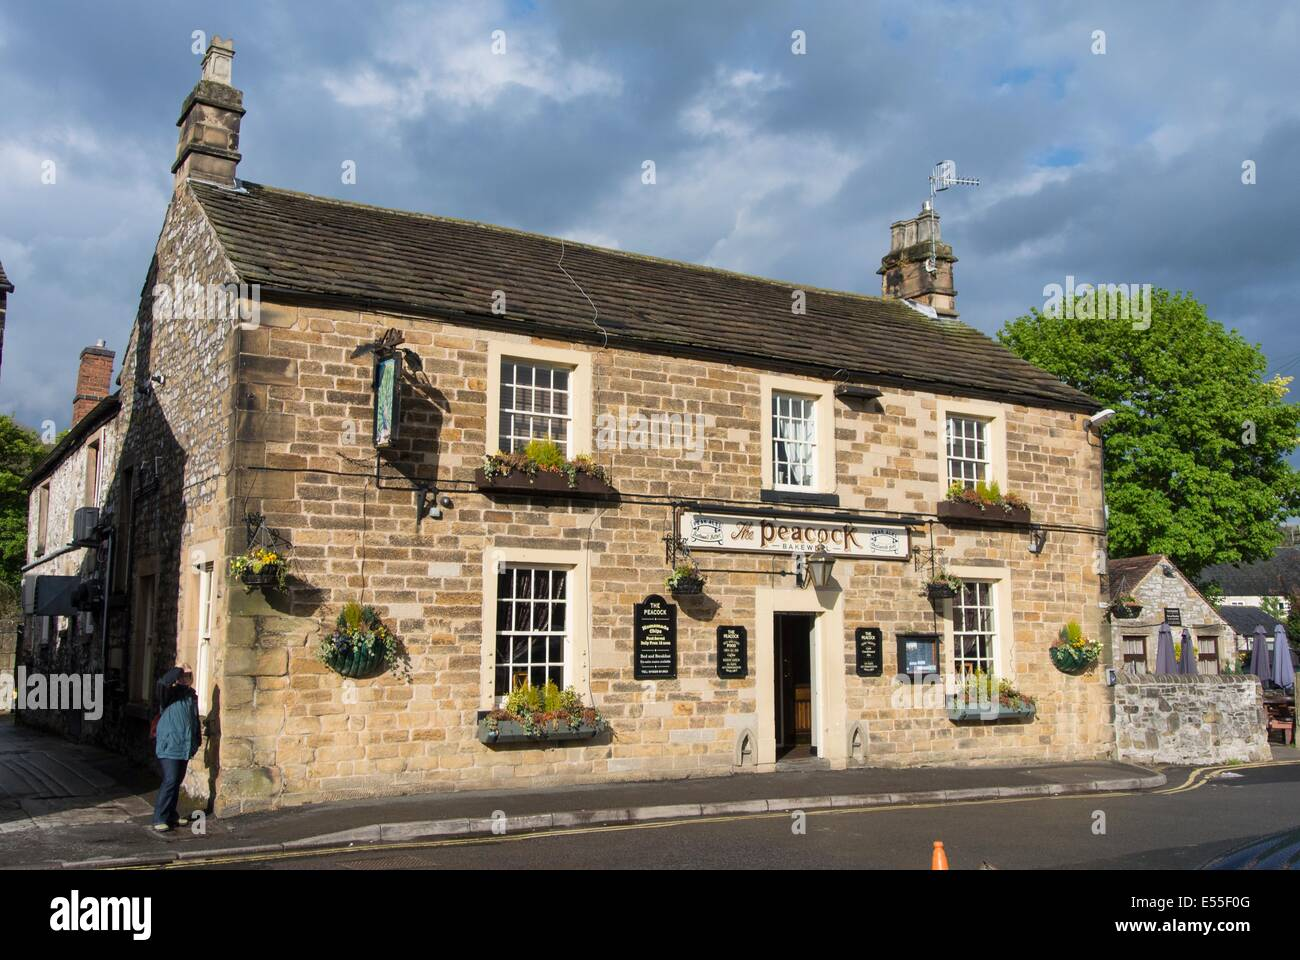 The Peacock public house, Bakewell, Derbyshire, England - Stock Image